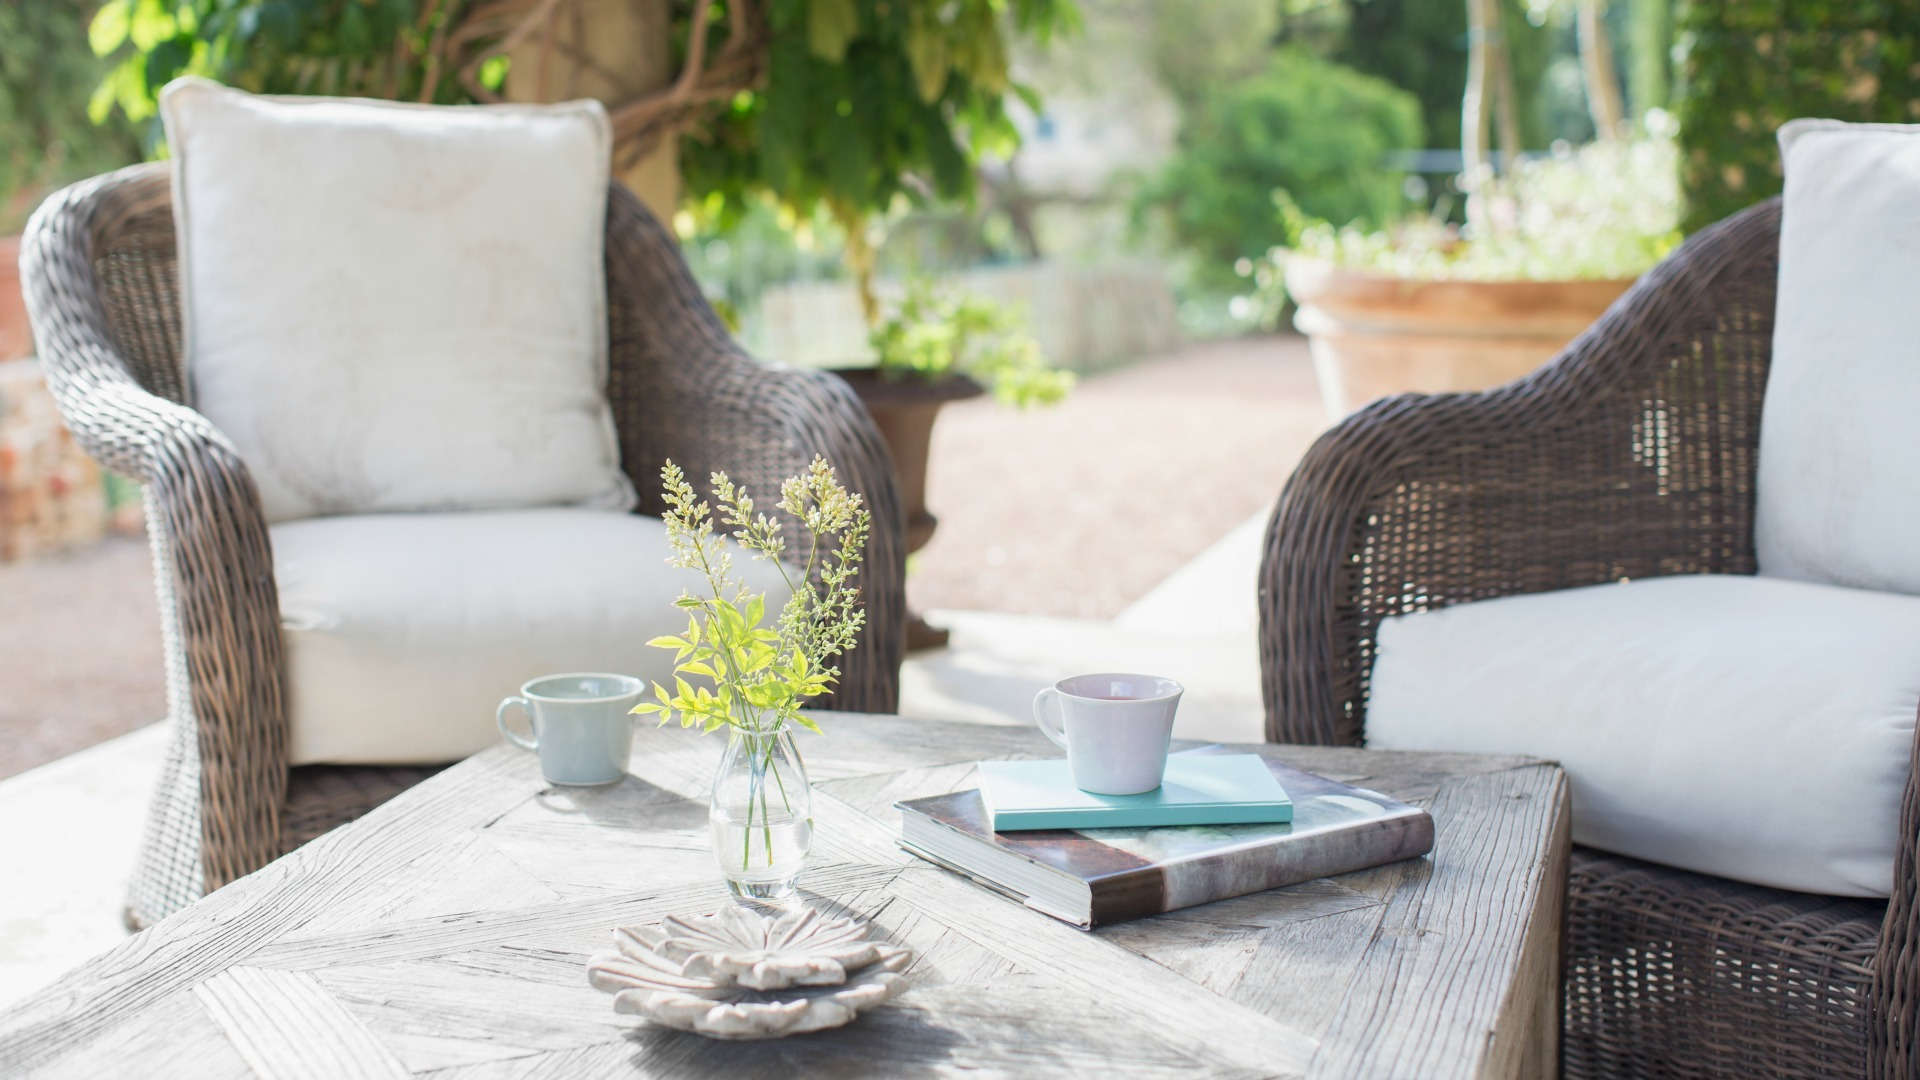 13 Ways To Make Your Patio As Comfy As Your Living Room Sheknows